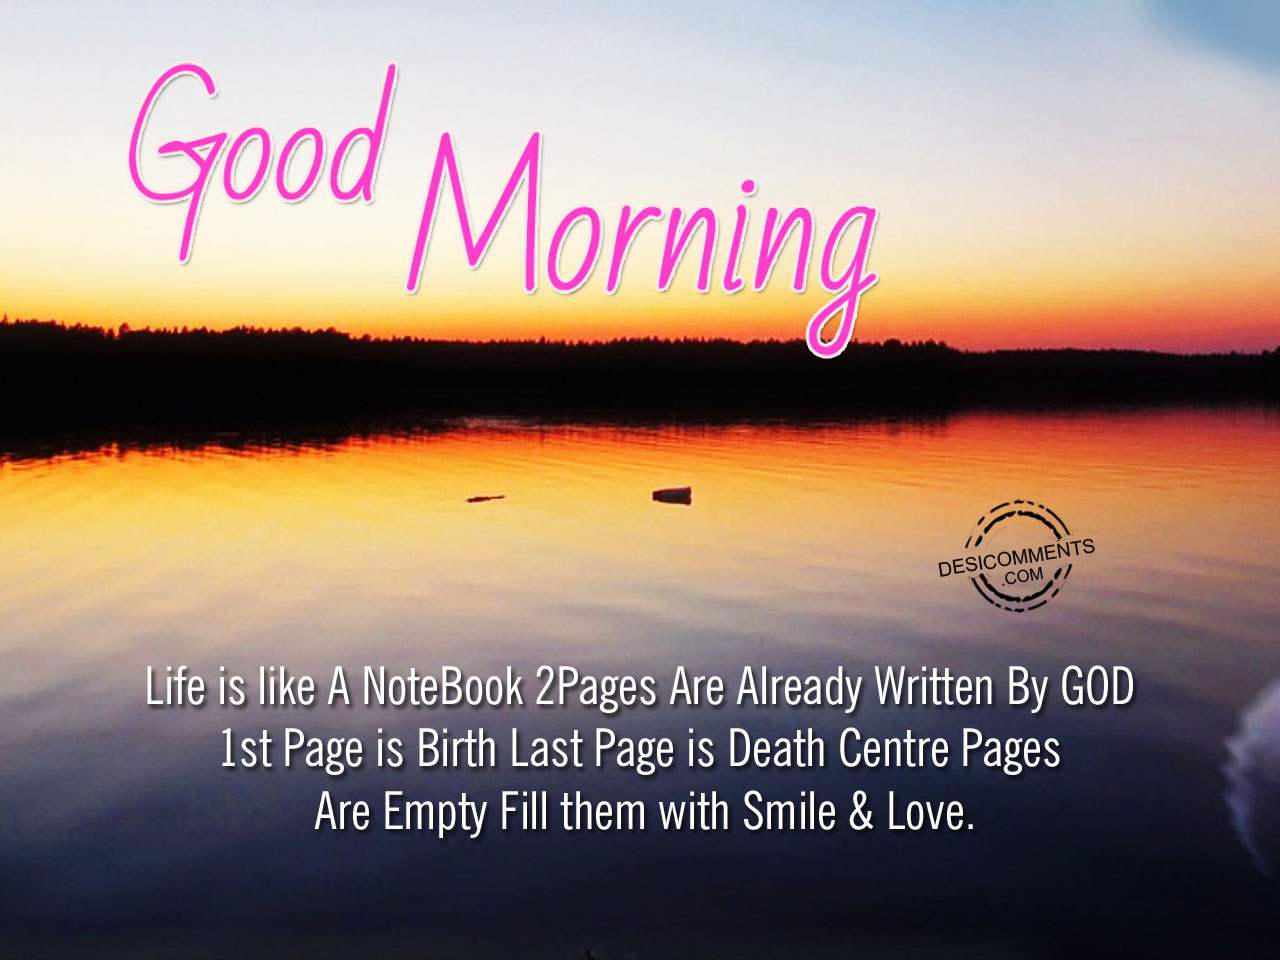 Good Morning - Life Is Like A Notebook - DesiComments.com